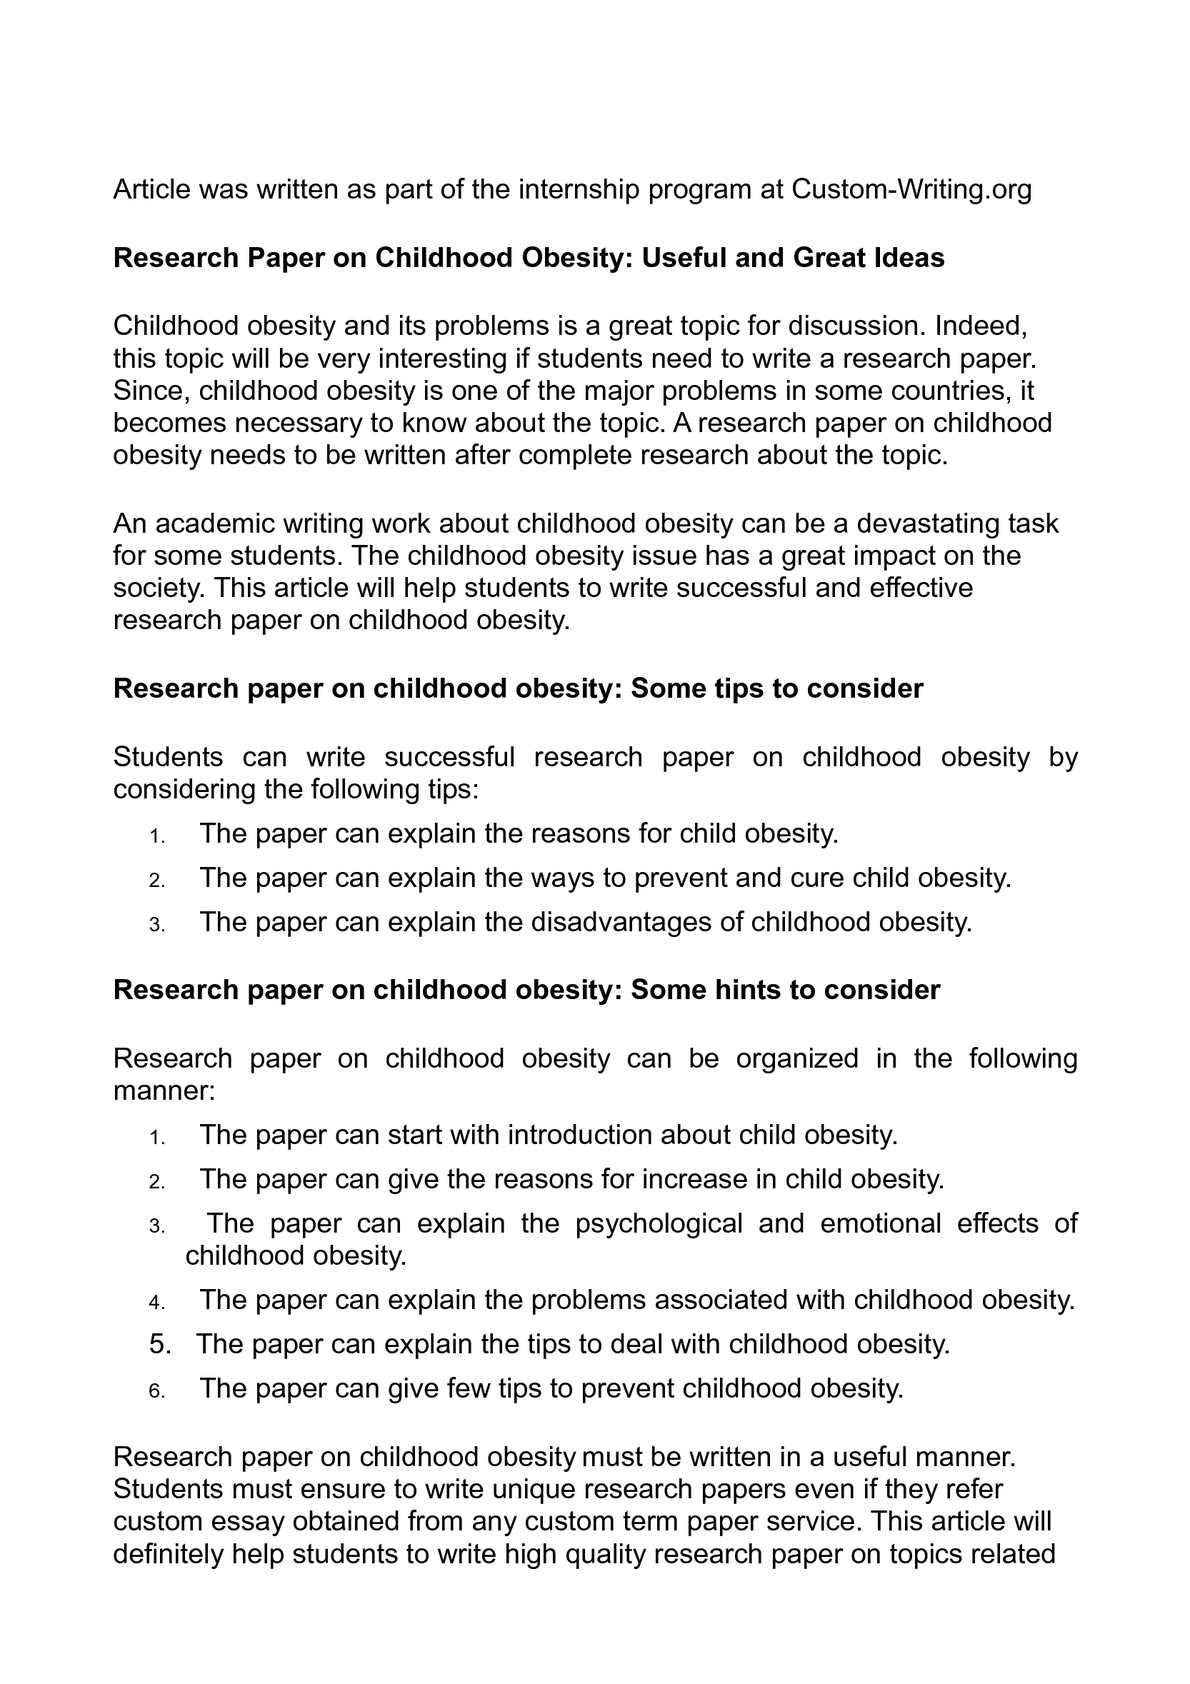 introduction for childhood obesity research paper Childhood obesity i introduction: childhood obesity introduction child health issues are at the core of argumentative research essay on childhood obesity.